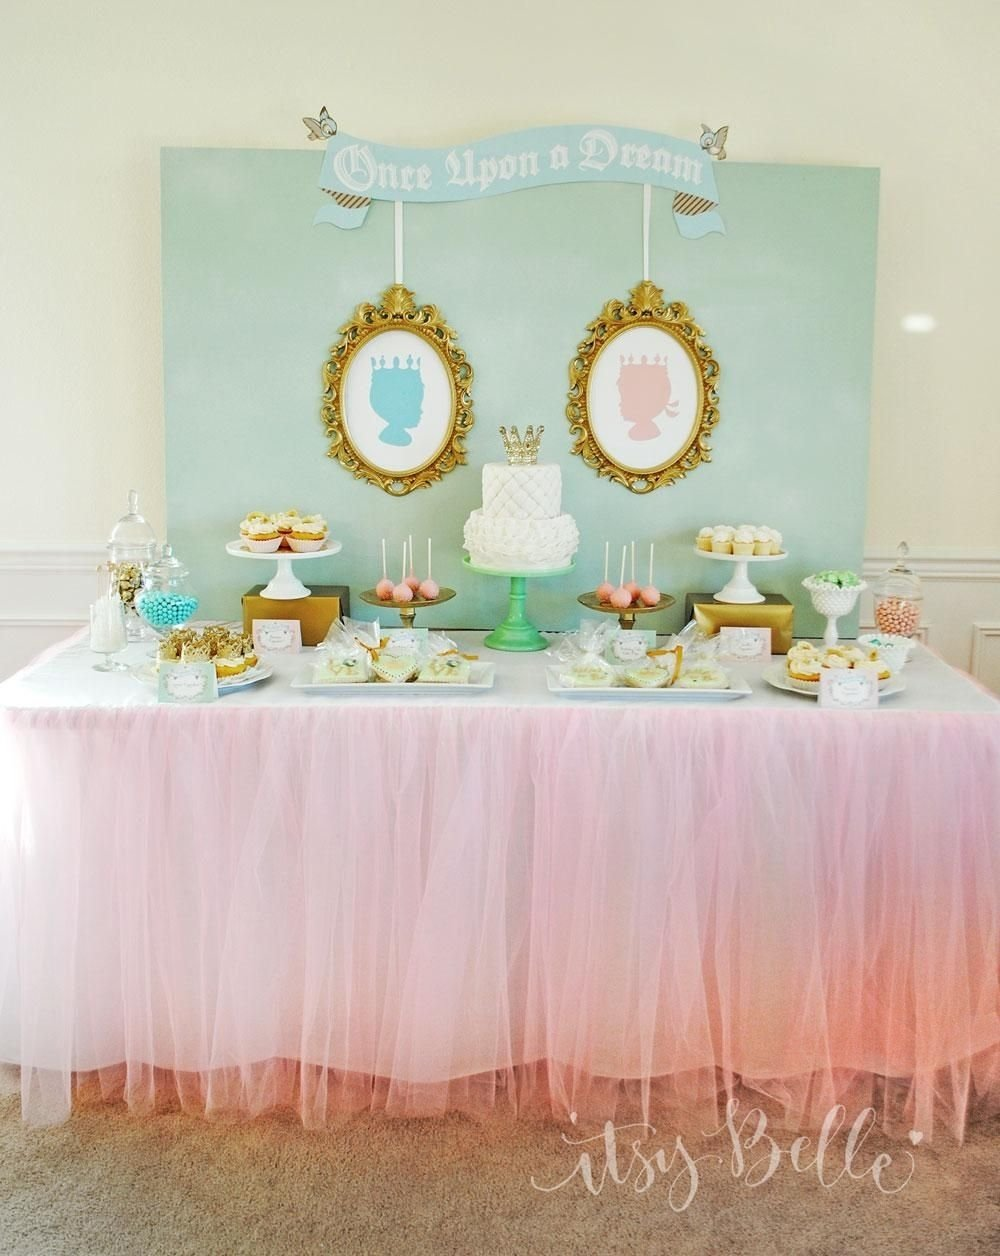 10 Fantastic Twin Girl Baby Shower Ideas baby shower decorations for boy and girl twins 2 shower 1 2020